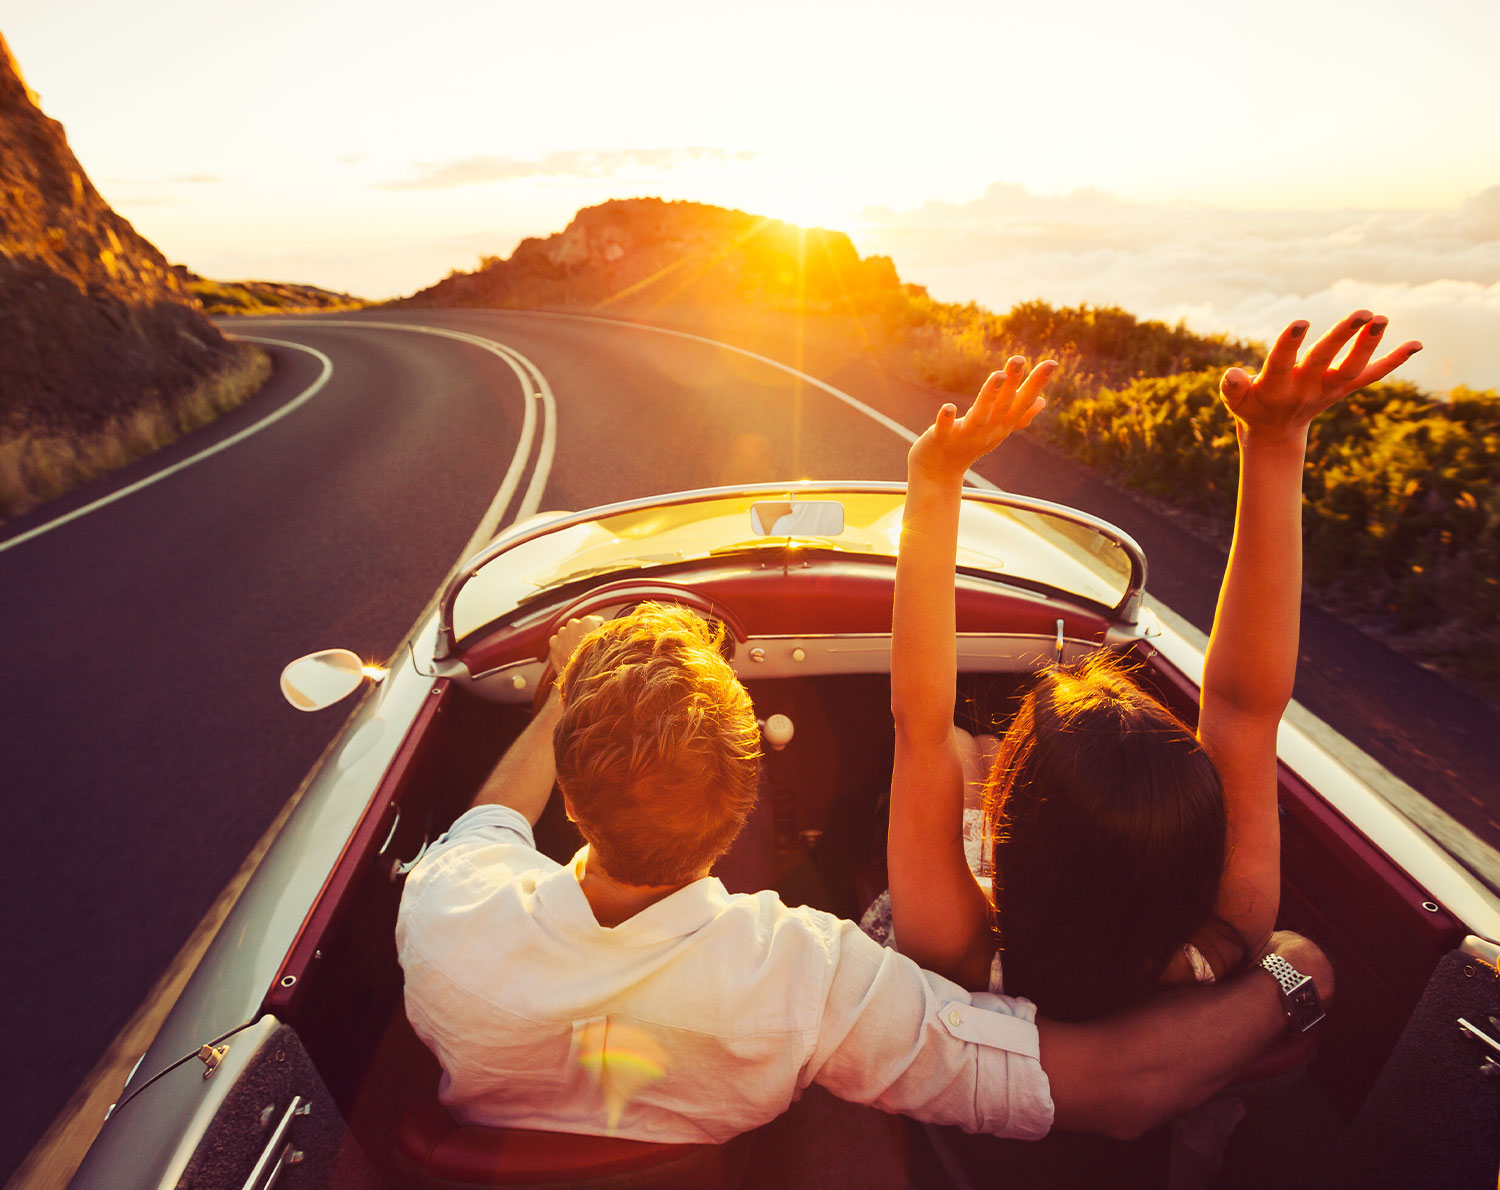 Couple driving along a mountain road in an open top car with sun gleam – importing luxury goods from abroad. Save money on international payments when buying a yacht from abroad, buying a car from abroad or importing a luxury good from abroad.